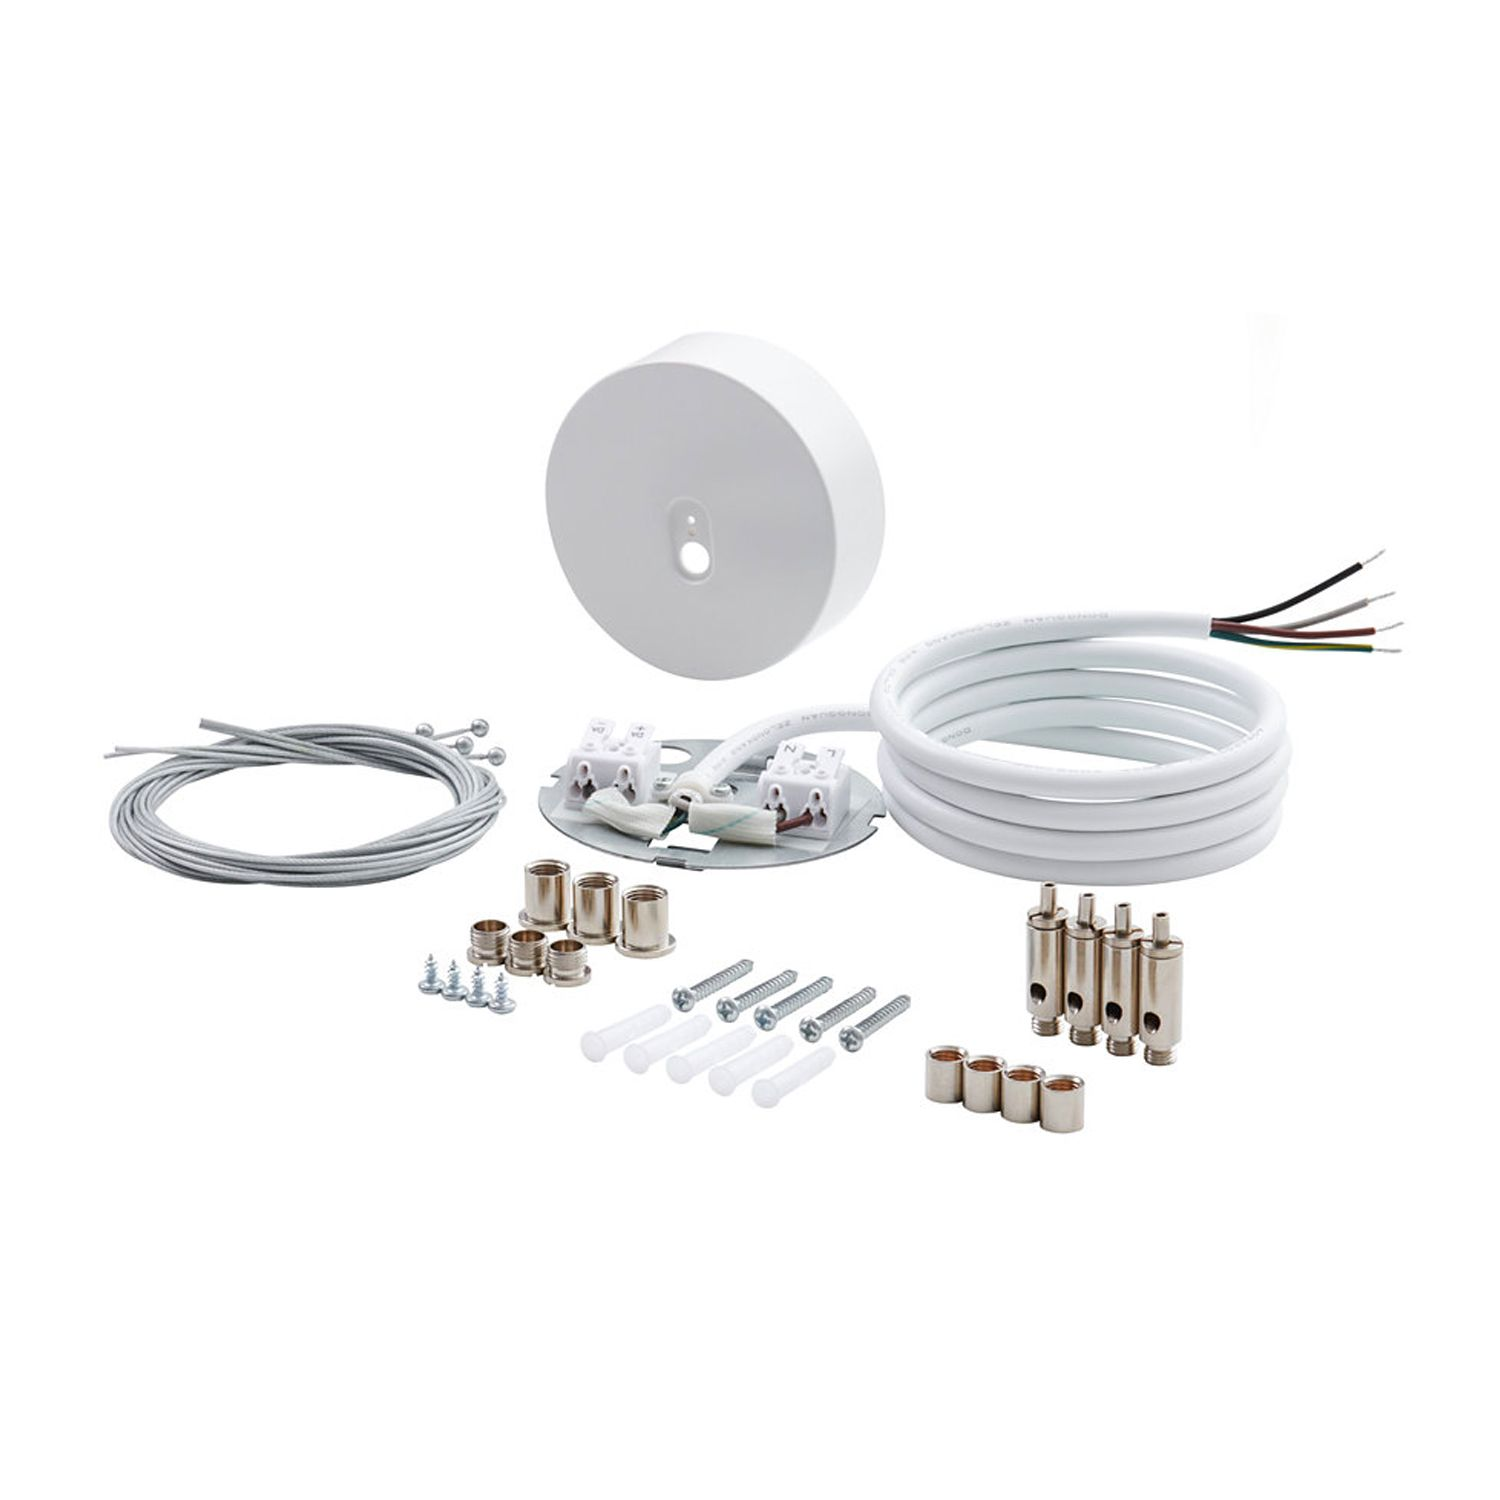 Philips Kit de montaje en superificie RC132Z SME-3